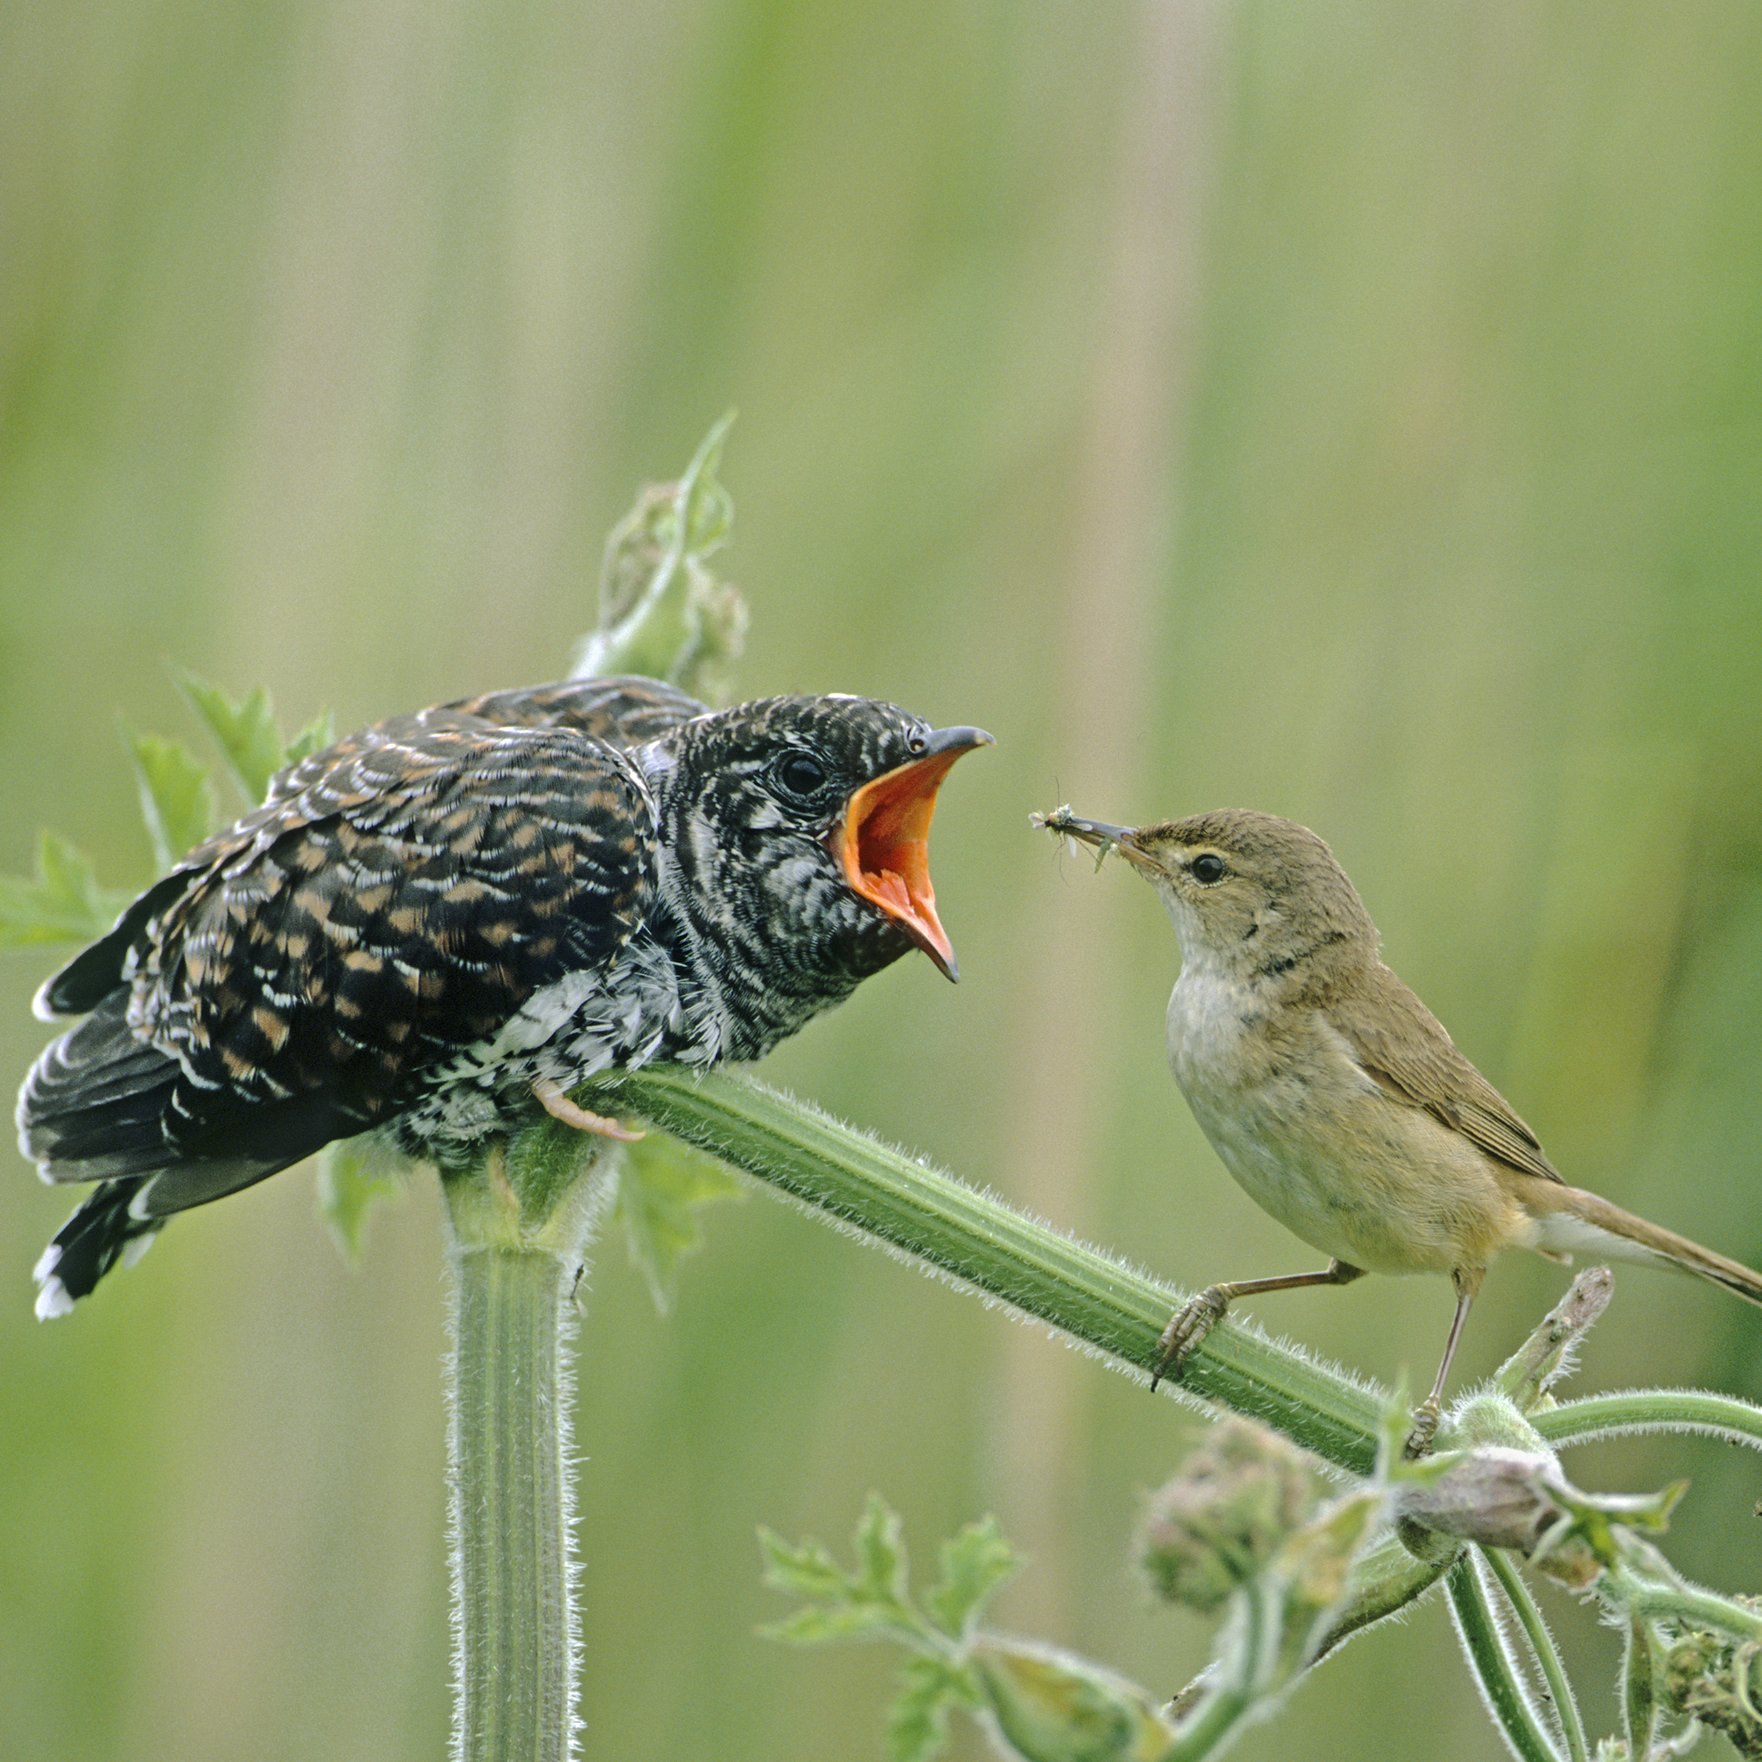 A Reed Warbler feeds a Common Cuckoo chick. © D. Kjaer